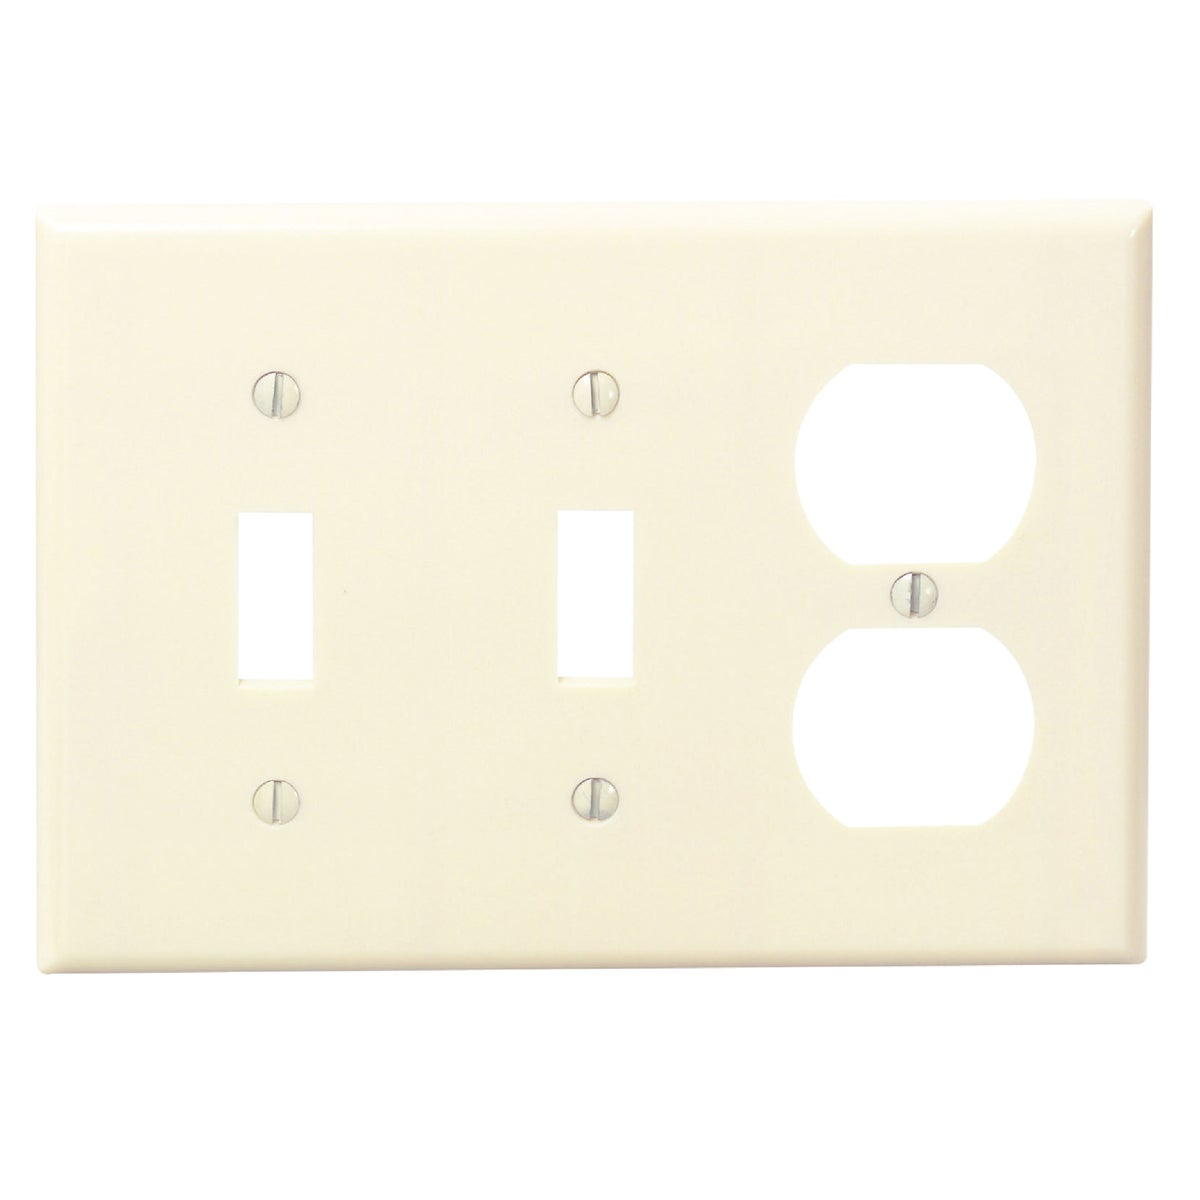 IV COMBO WALL PLATE - 86021 by Leviton Mfg Co